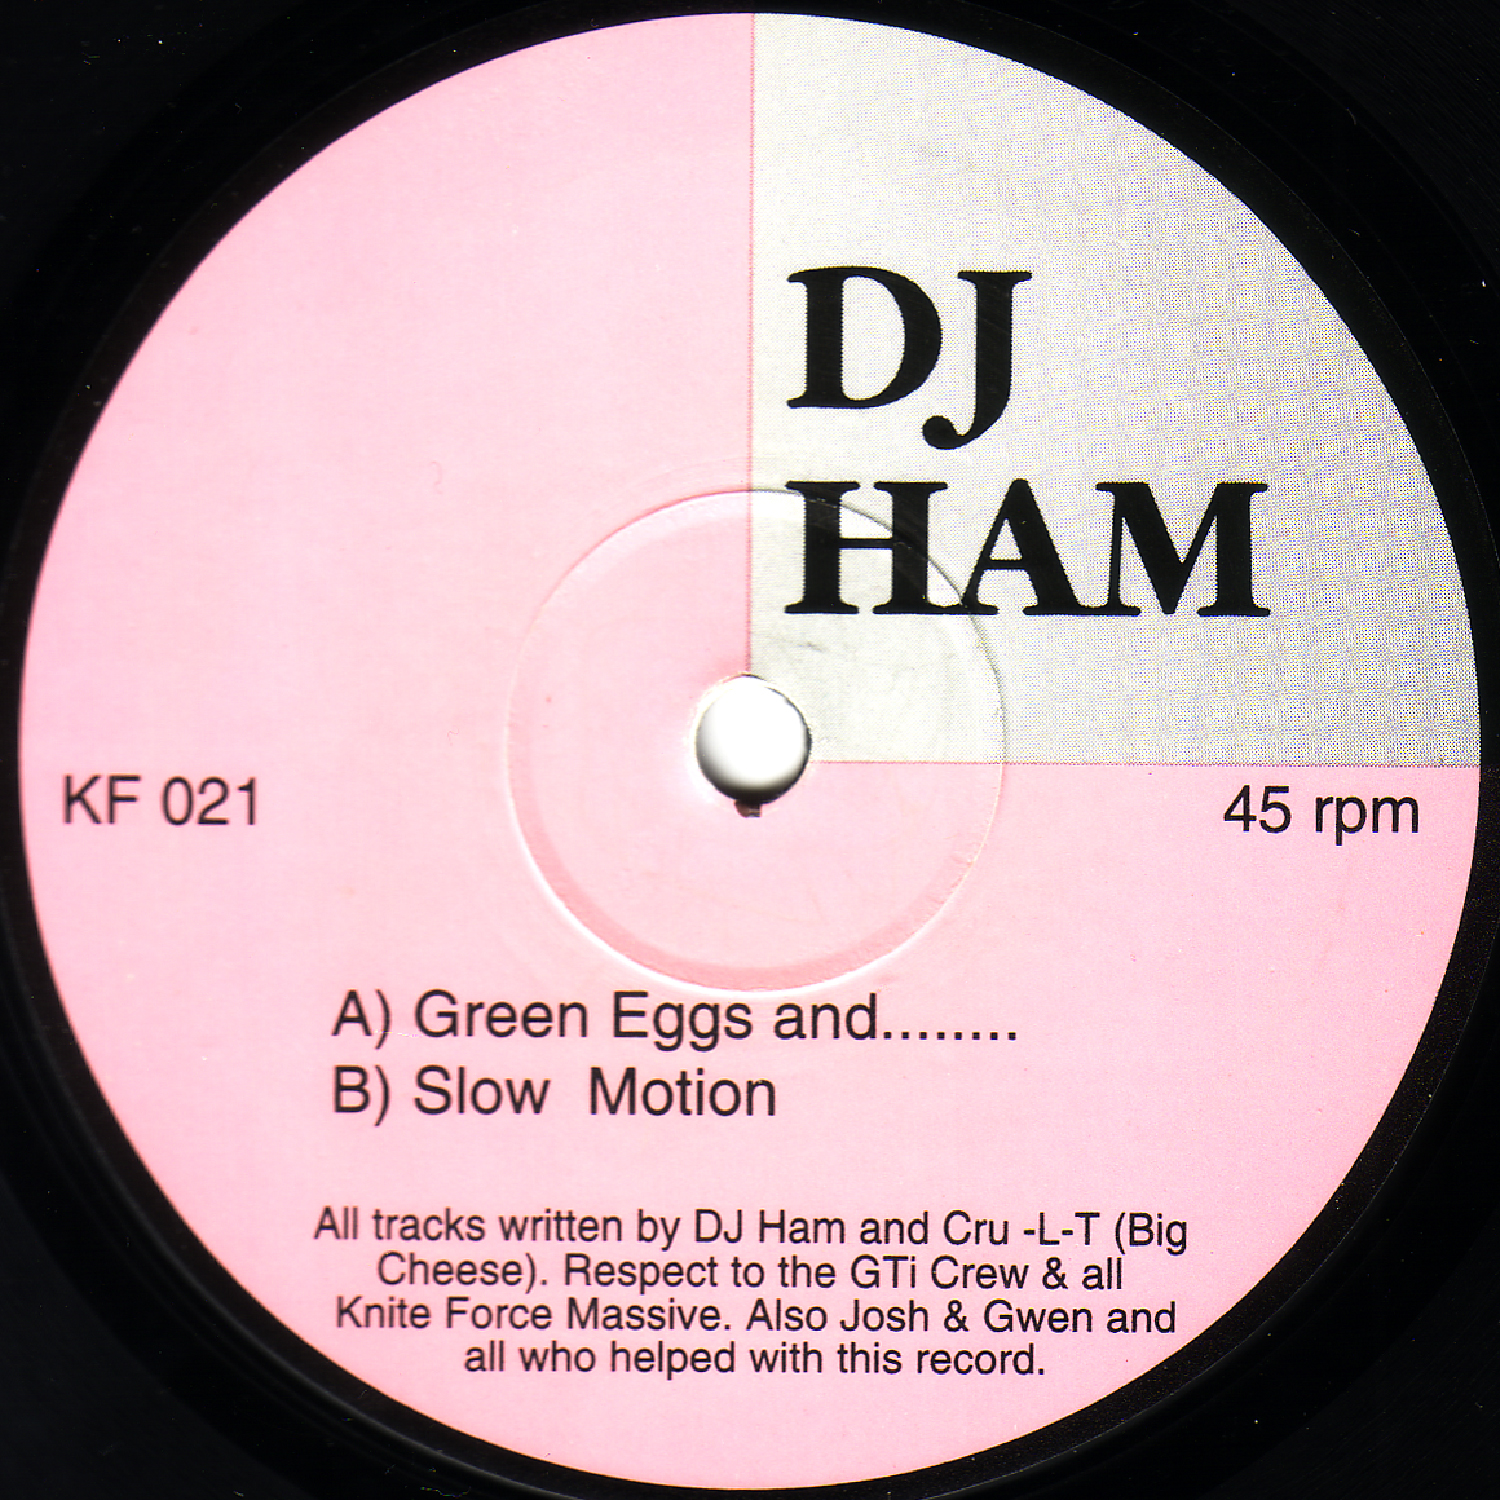 [KF021] DJ Ham - Green Eggs And....EP (Digital Only)